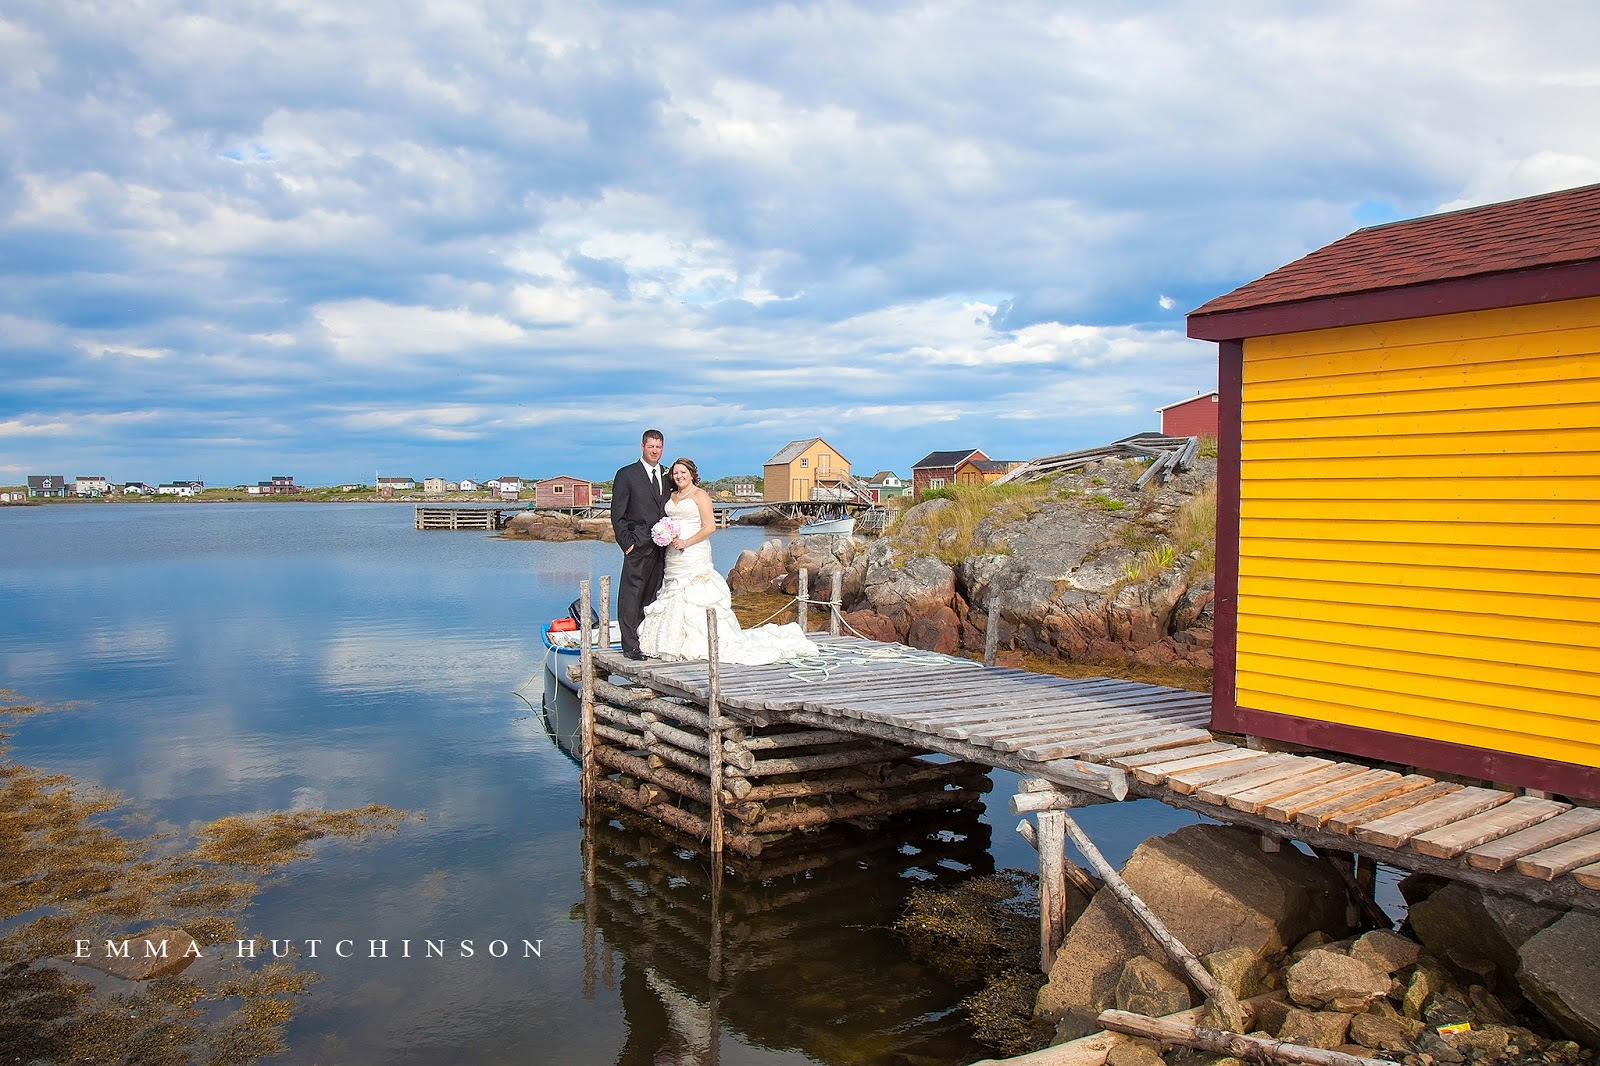 Emma Hutchinson Photography photographs weddings in Tilting, Fogo Island